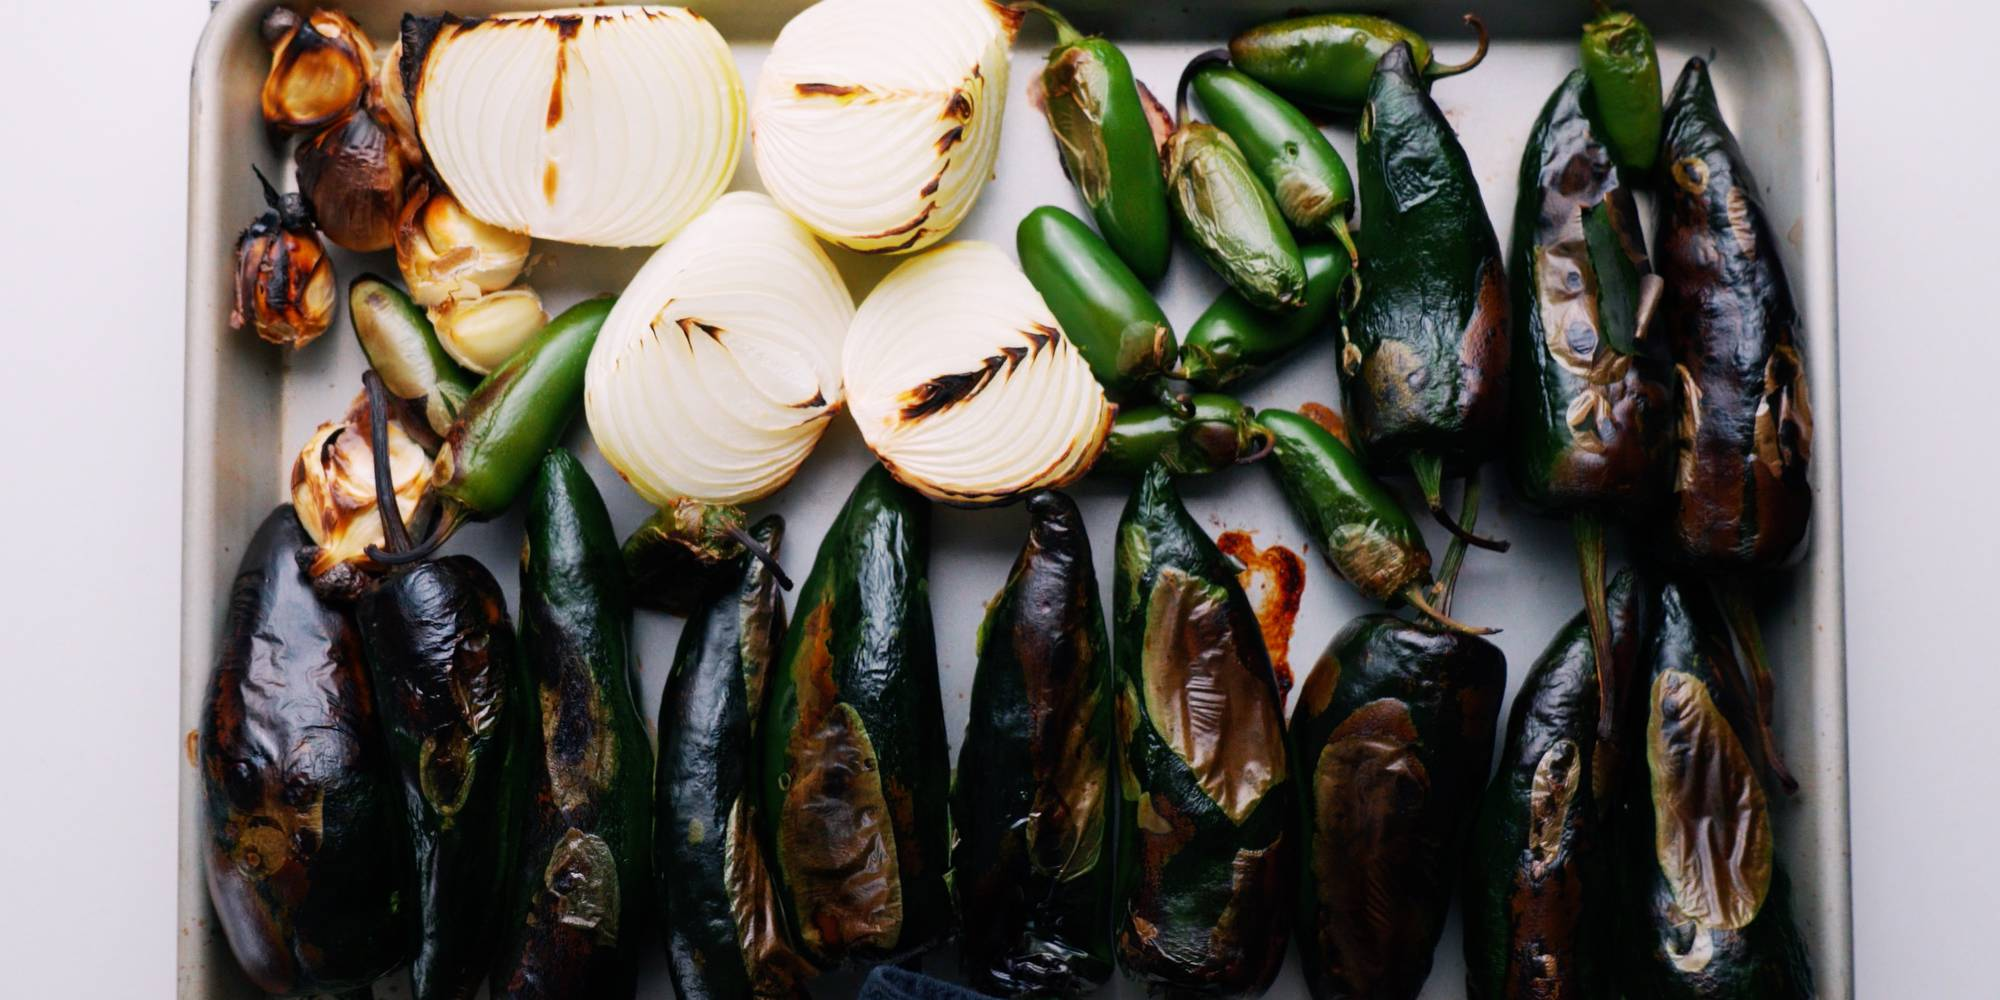 Char-roasted green chili peppers, onions, and garlic.